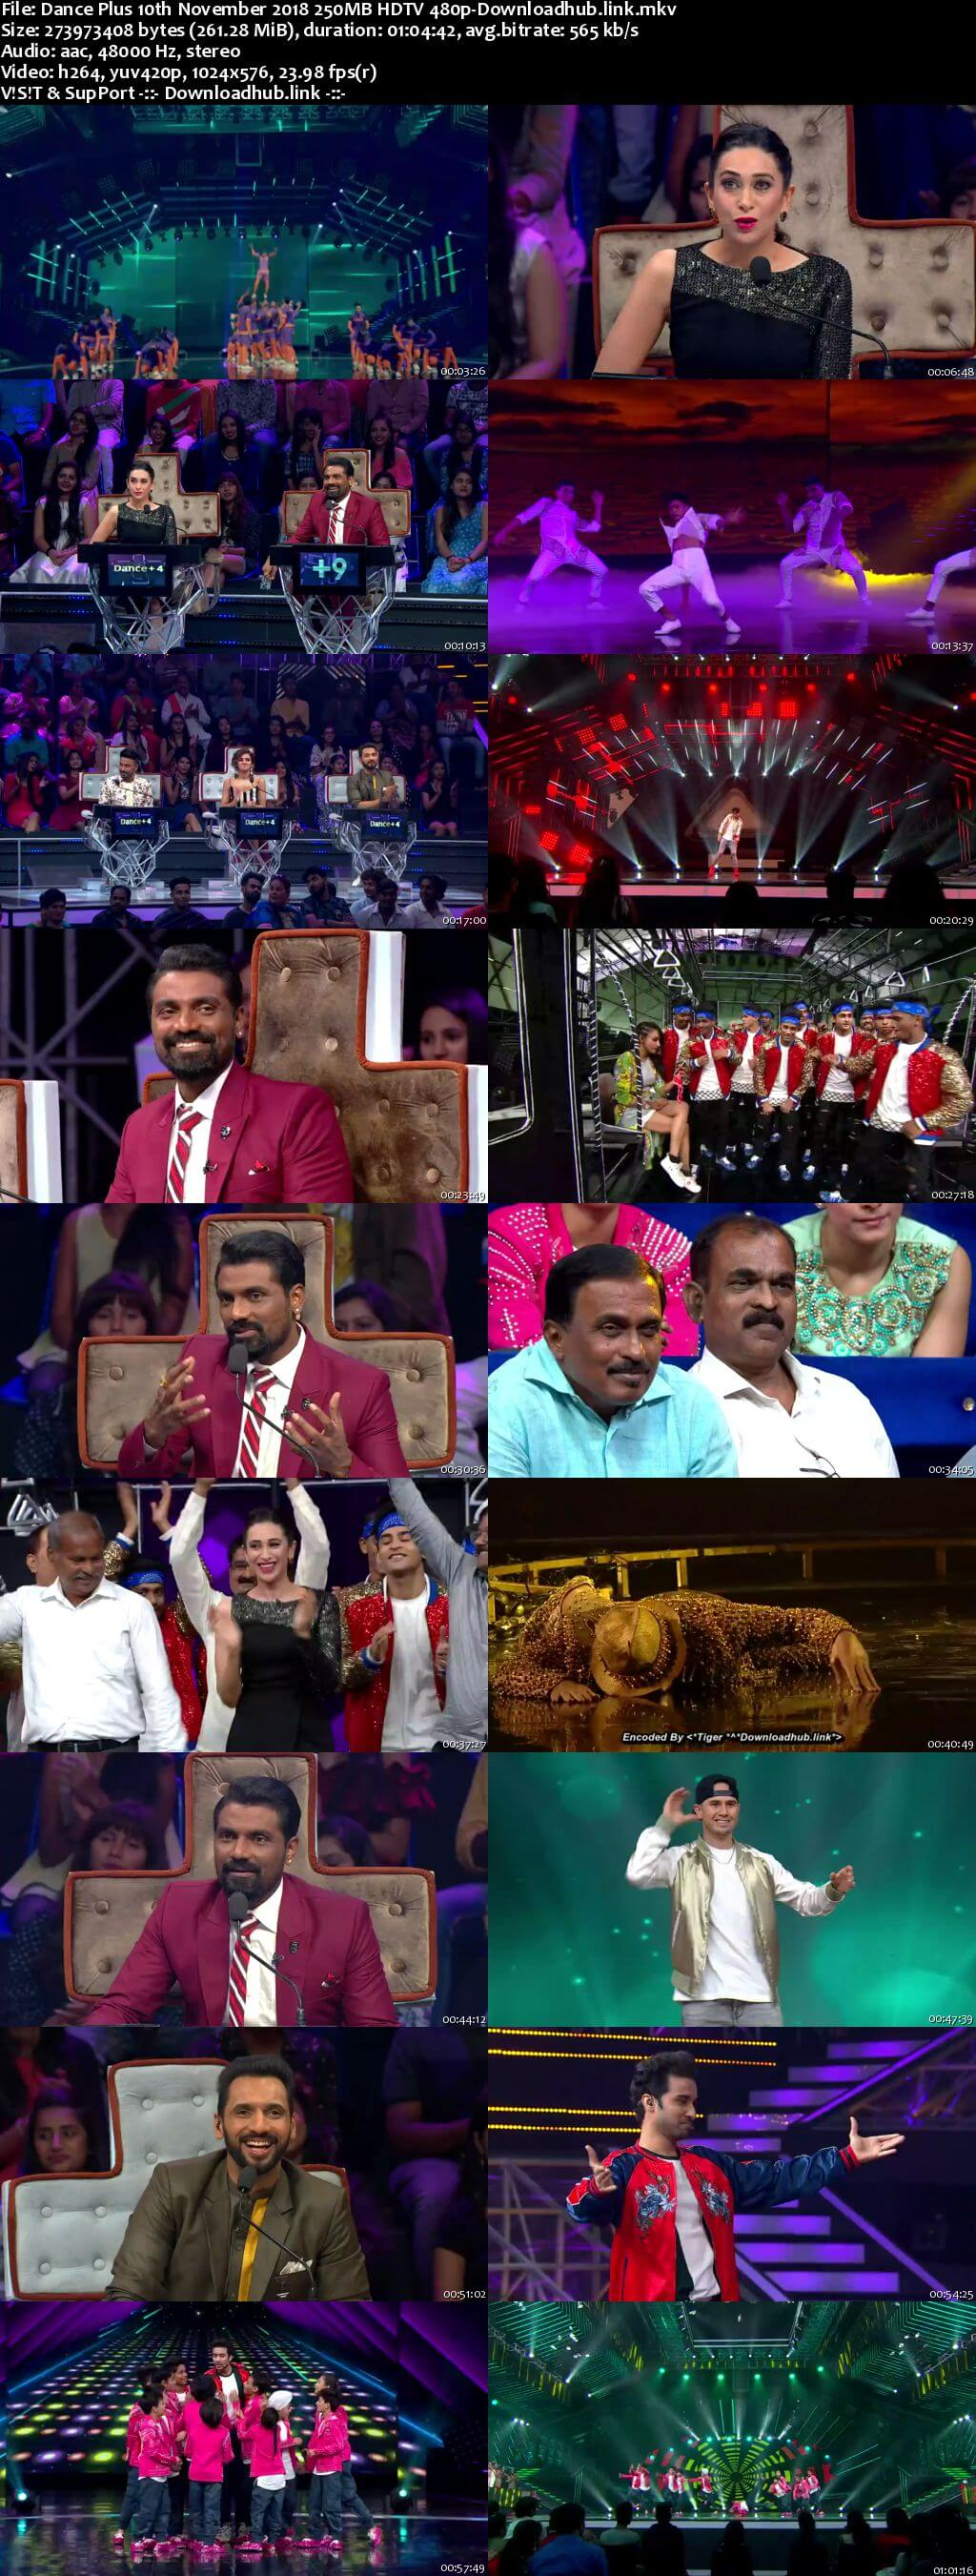 Dance Plus Season 4 10 November 2018 Episode 10 HDTV 480p